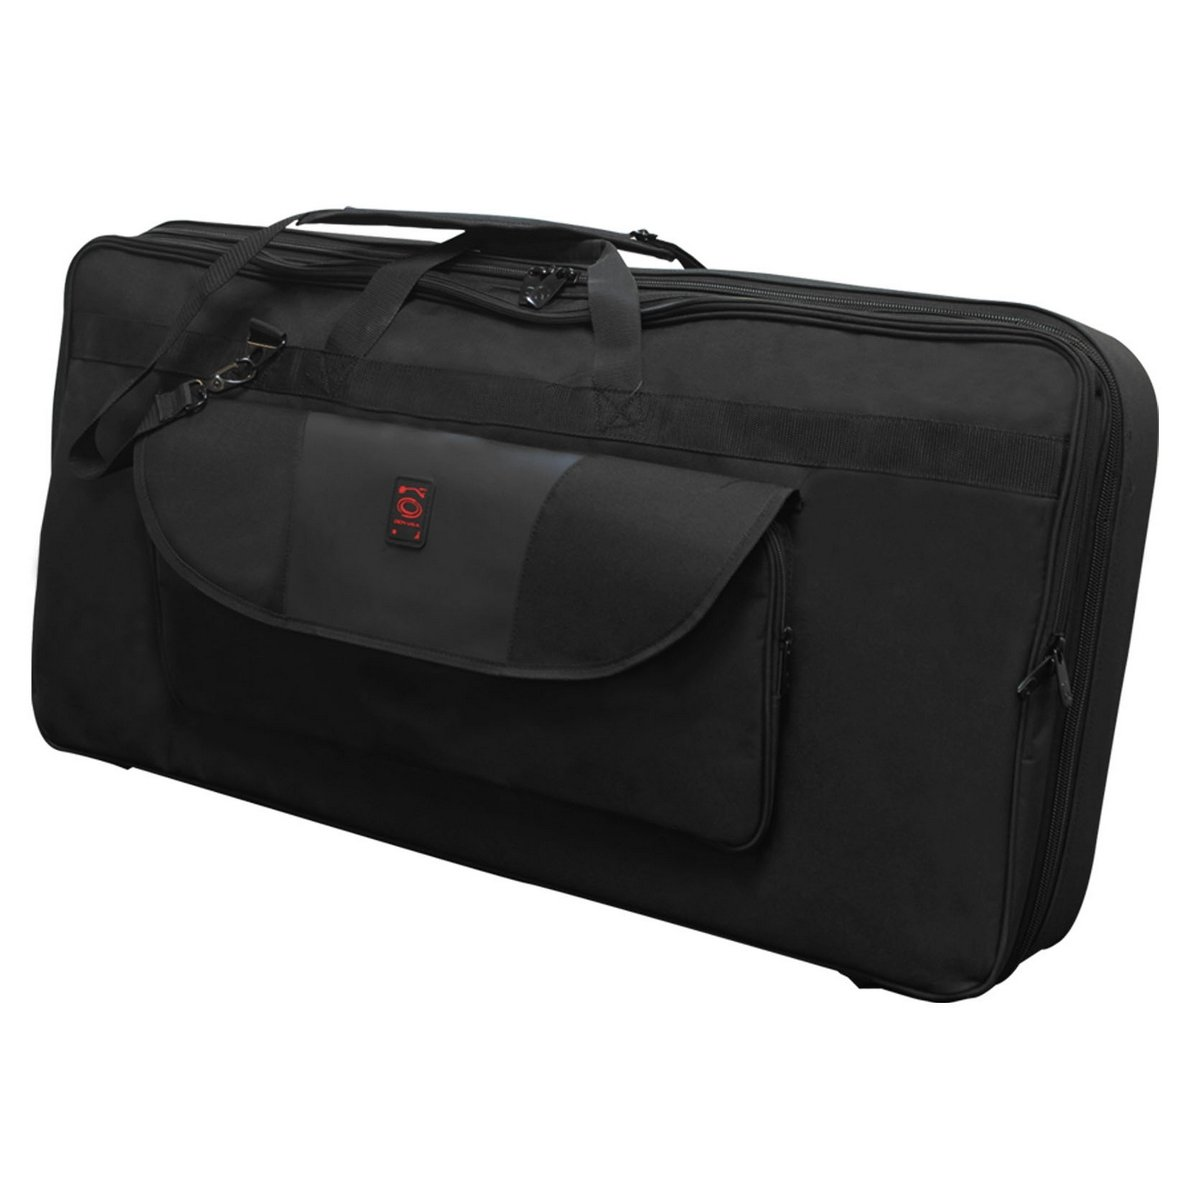 Odyssey Red Series Gear Bag for Pioneer DDJ-SZ - New BRLDIGITAL3XL